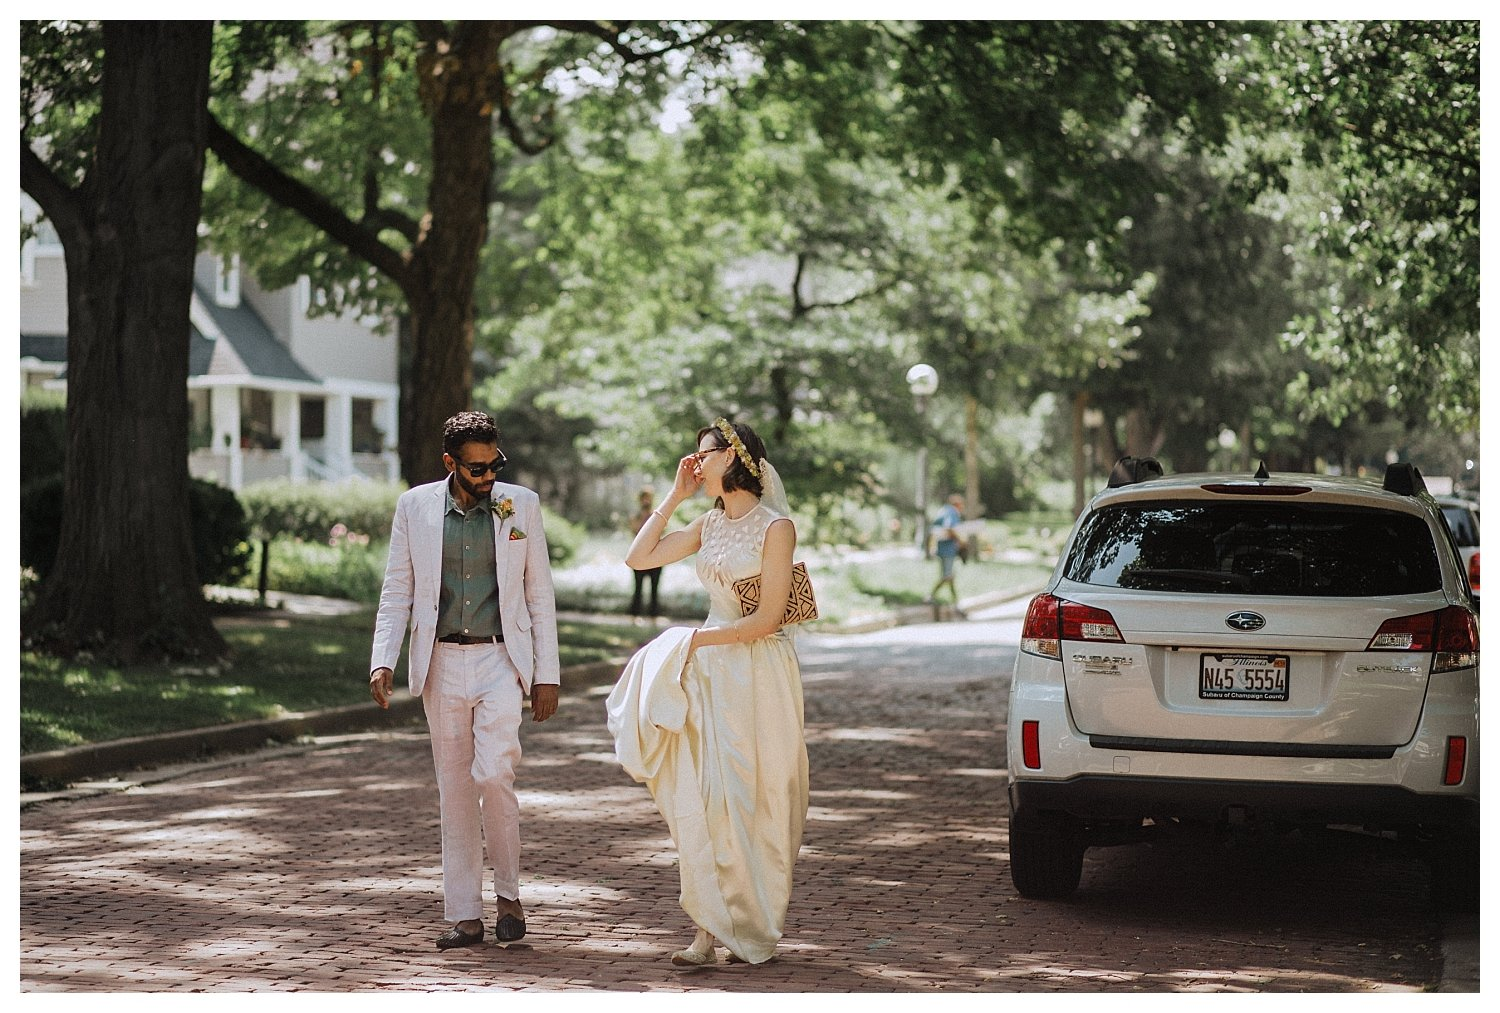 Champaign bride and groom walking